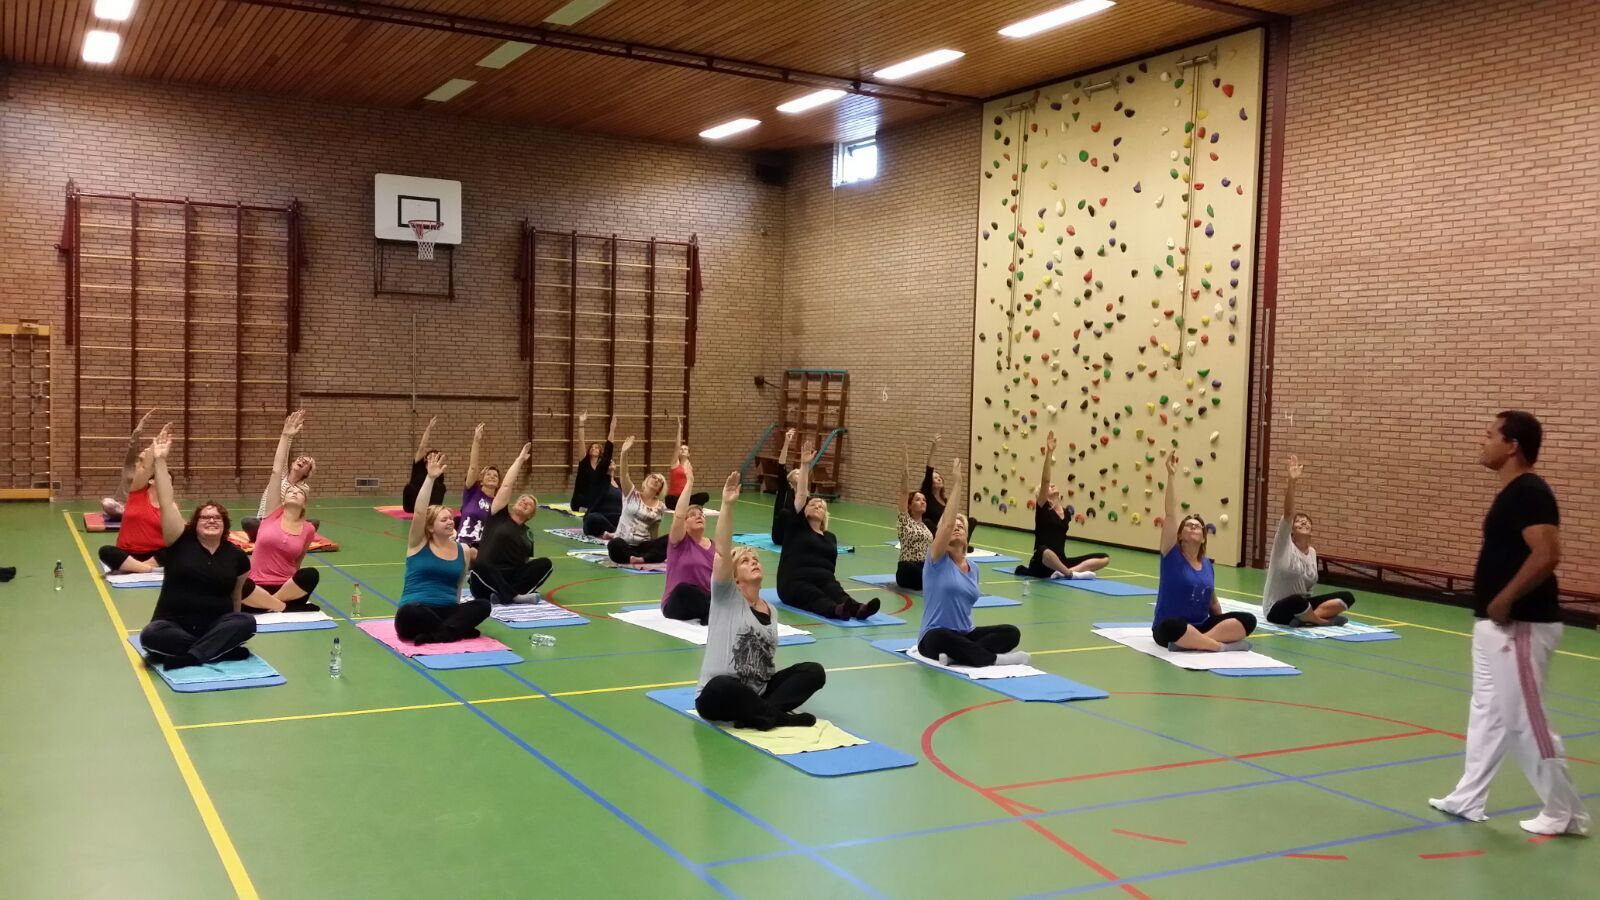 Pilates Sportvereniging Bierum